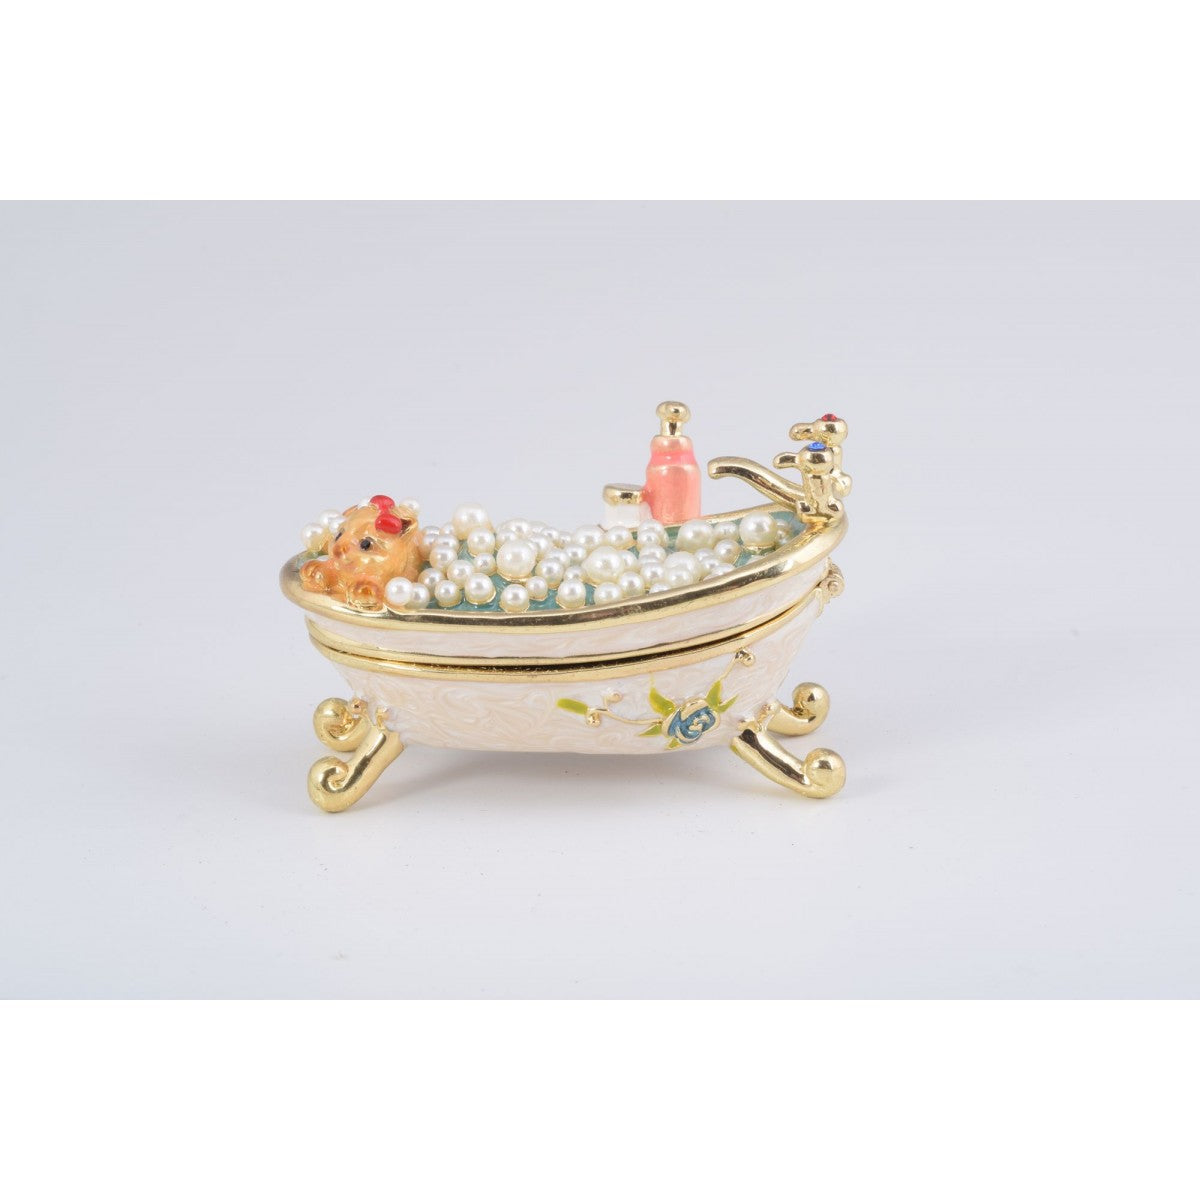 Lady Cat Bath Trinket Box by Keren Kopal